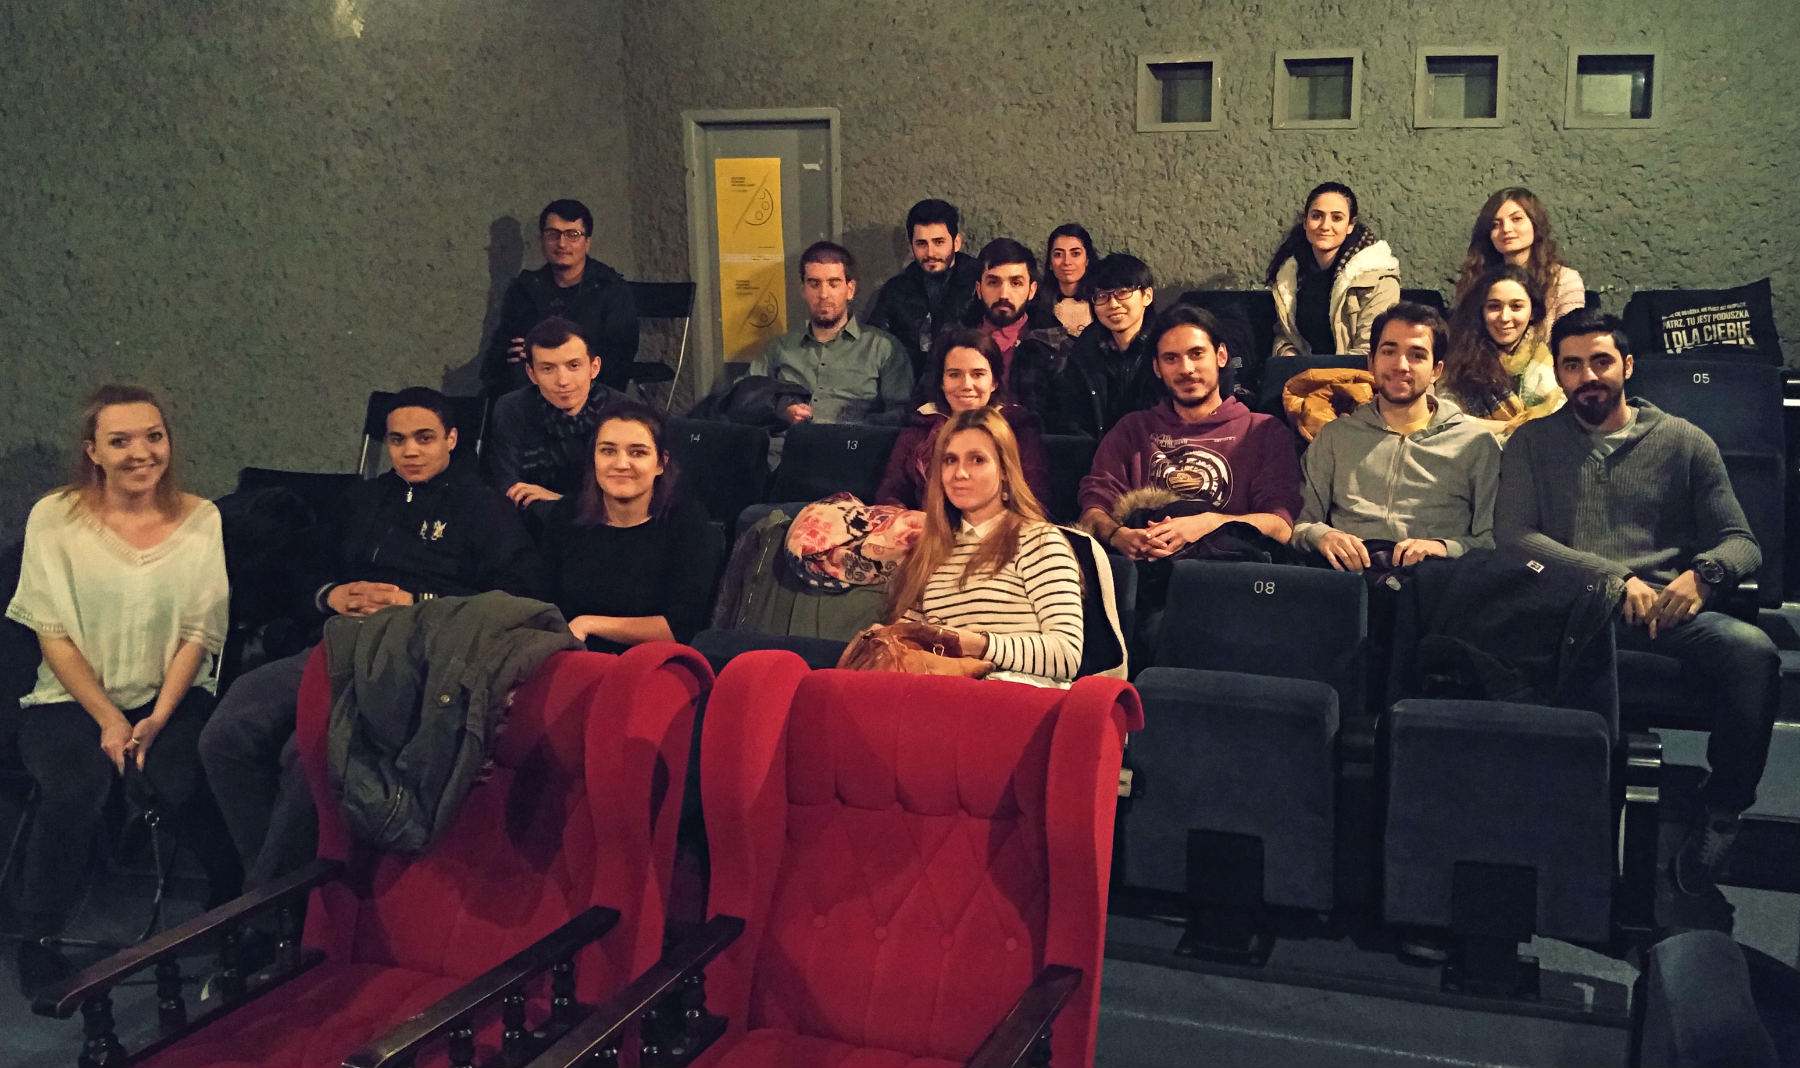 We have been hitting the indy cinema, Meduza, just around the corner to watch some movies and talk about it with our international fellow students. You are all welcome to join us: look for updates at hello.uni.opole.pl/erasmus